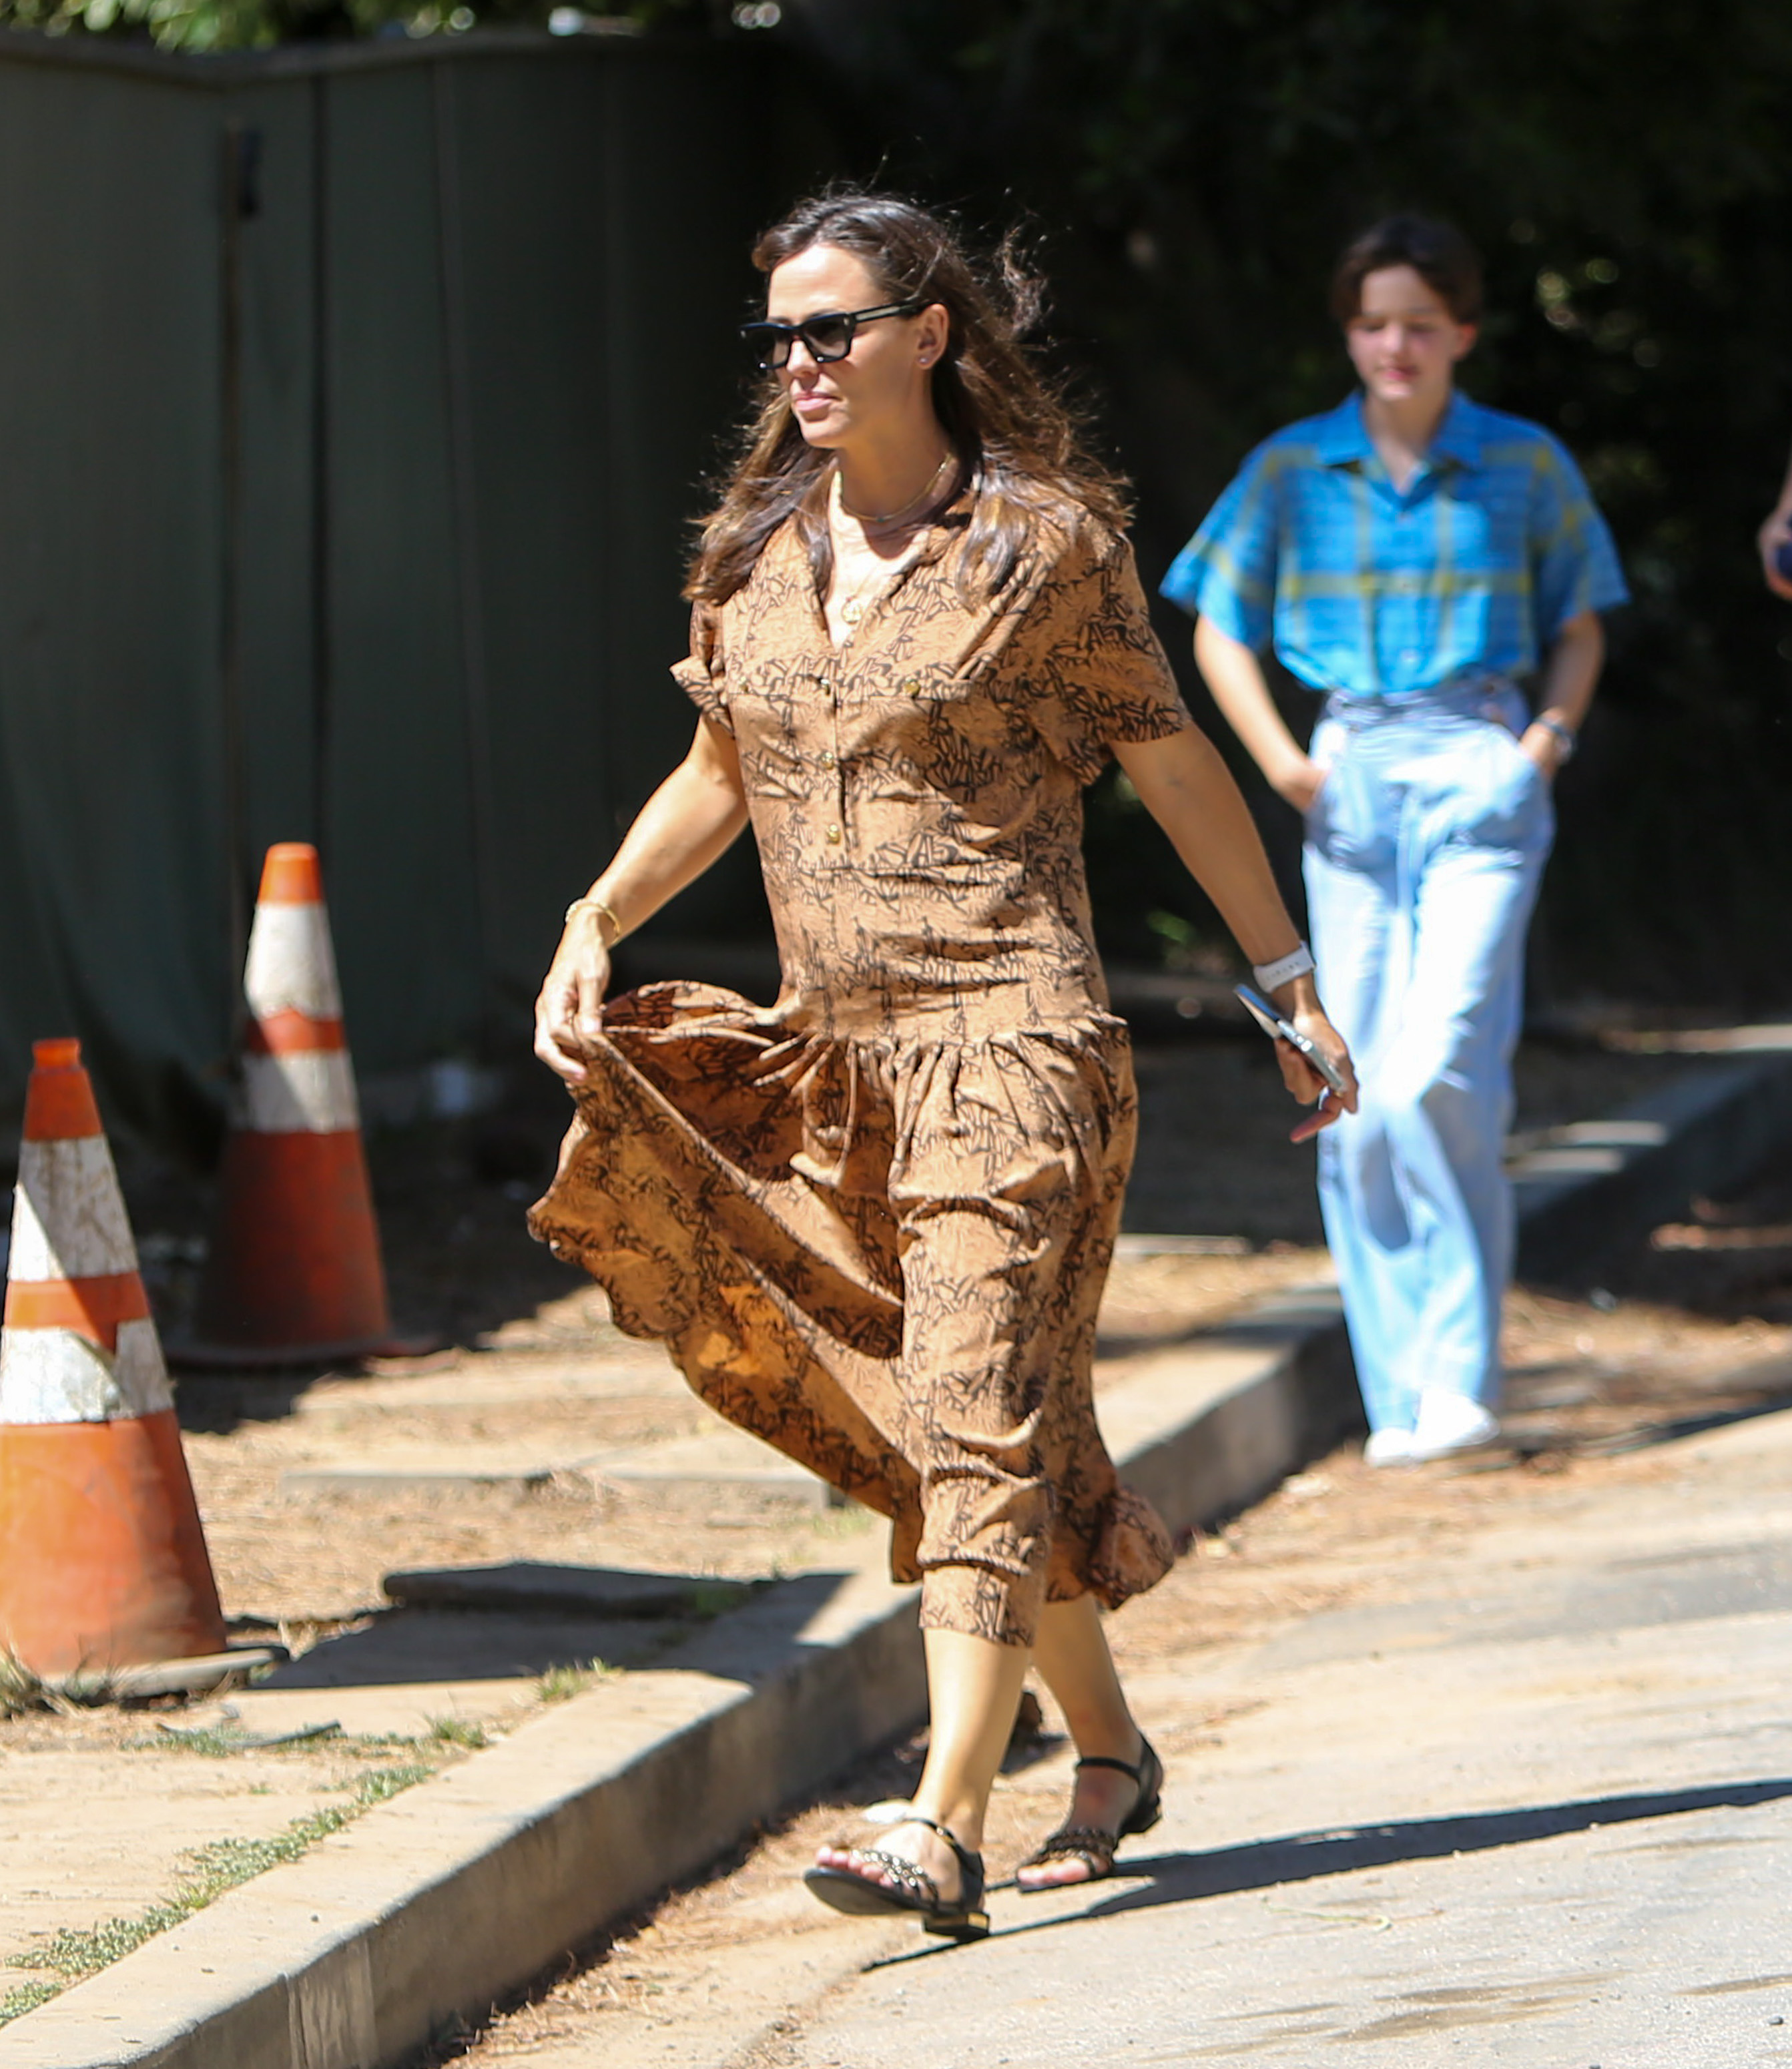 Jennifer Garner is seen with Violet, Seraphina and Samuel Affleck in Los Angeles, California. NON-EXCLUSIVE September 11, 2021 210911BG004 Los Angeles, CA www.bauergriffin.com. 11 Sep 2021 Pictured: Jennifer Garner. Photo credit: BG004/Bauergriffin.com / MEGA TheMegaAgency.com +1 888 505 6342 (Mega Agency TagID: MEGA786259_014.jpg) [Photo via Mega Agency]